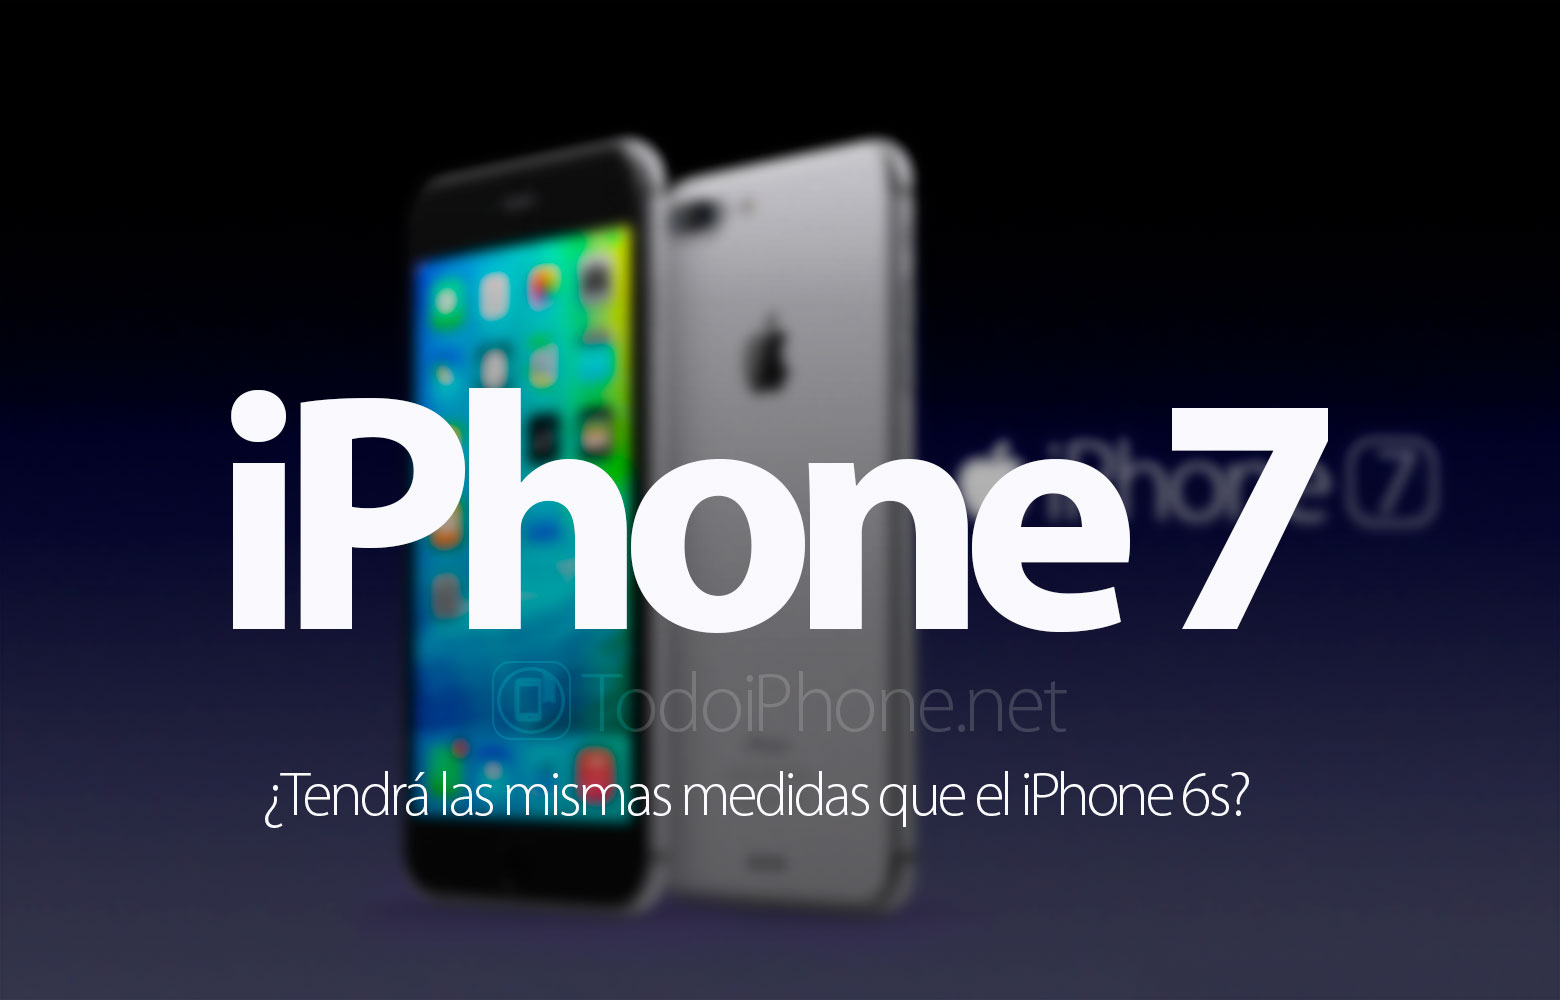 iphone-7-mismas-medidas-iphone-6s